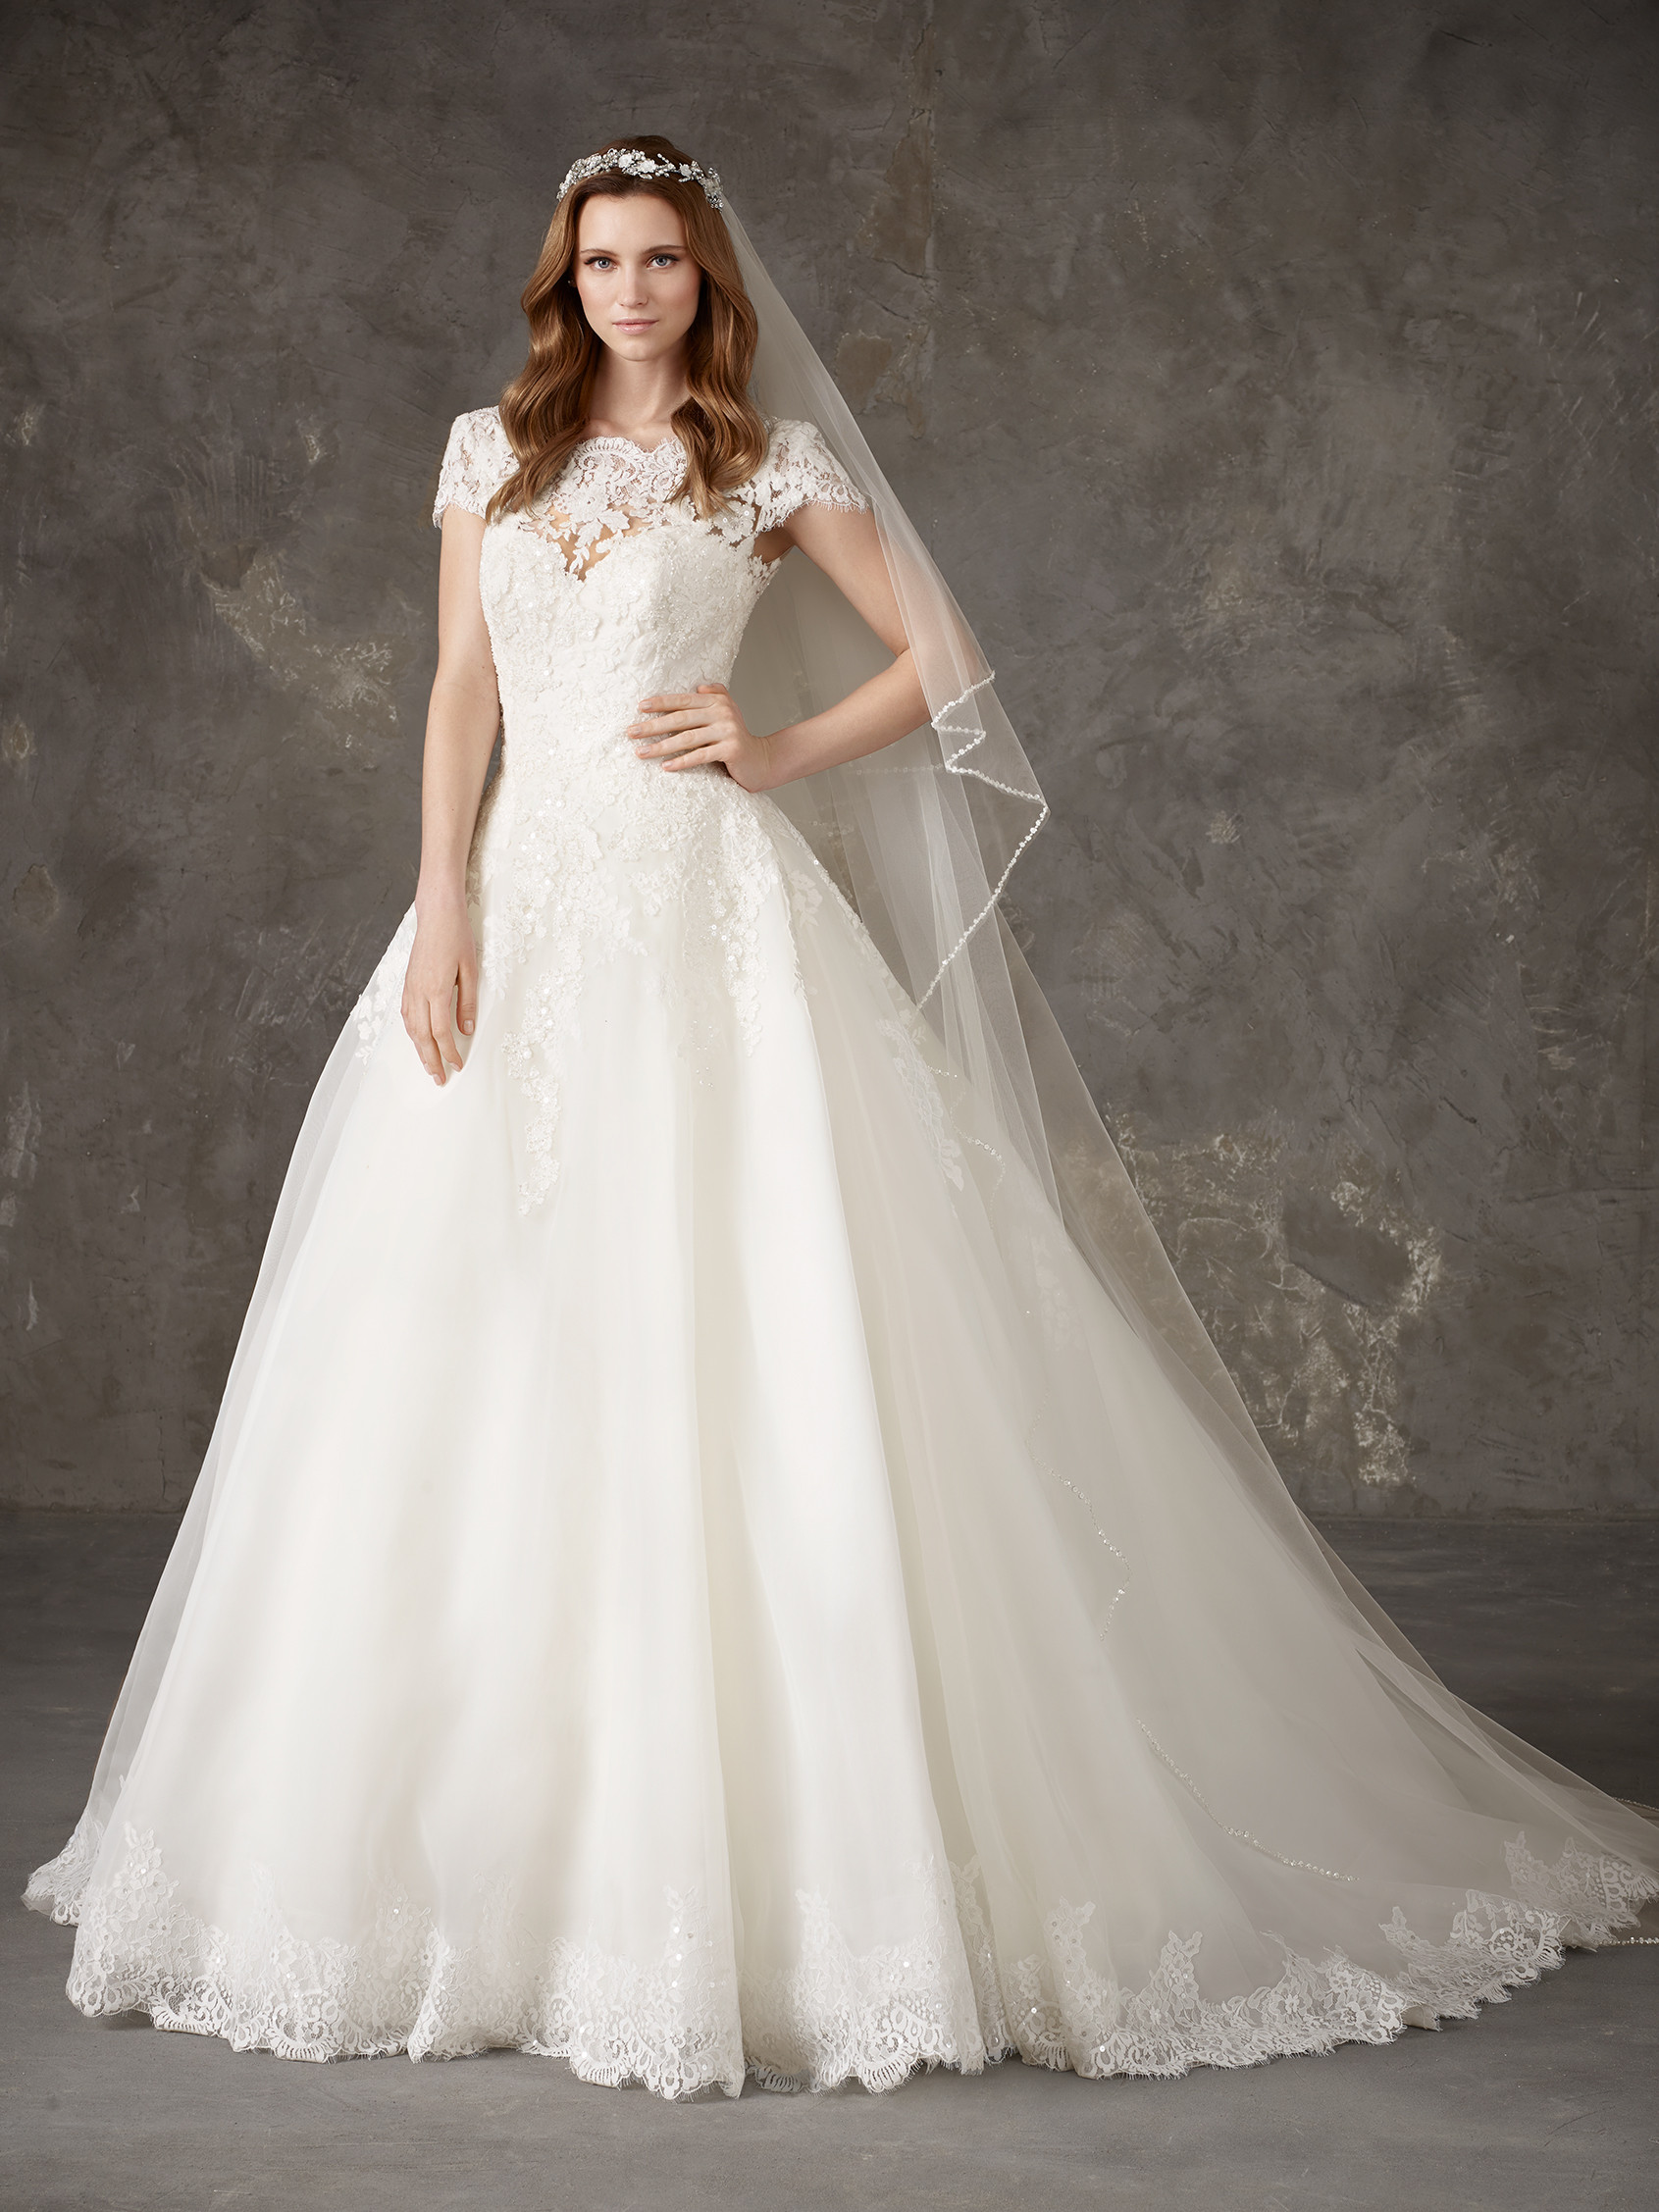 Bateau Neckline Lace Bodice Full Skirt Ball Gown Wedding Dress